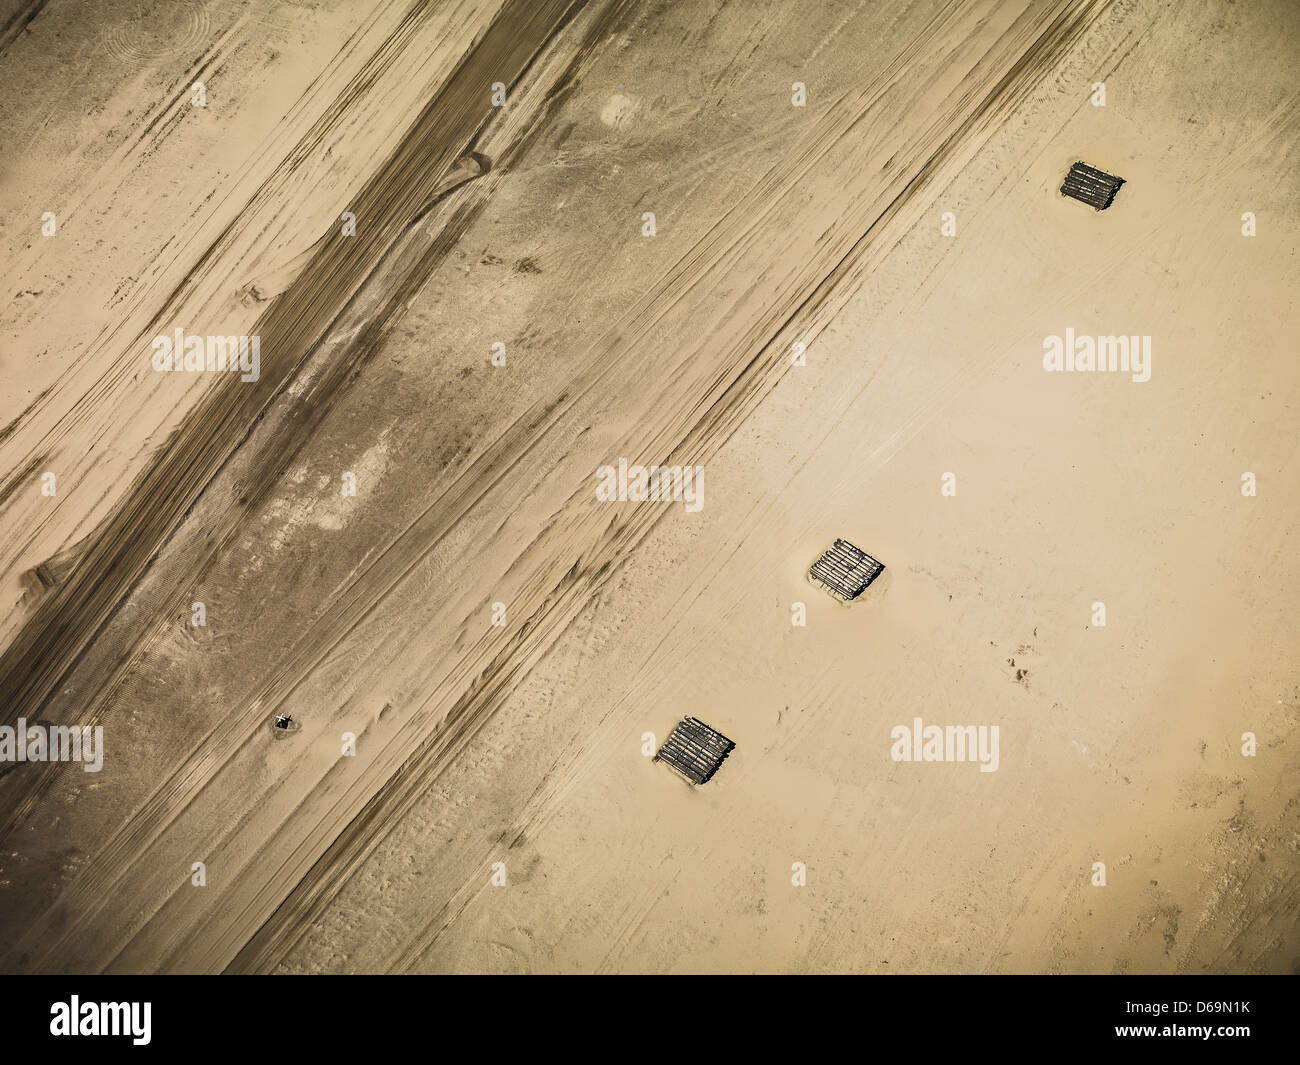 Aerial view of strip coal mining field - Stock Image